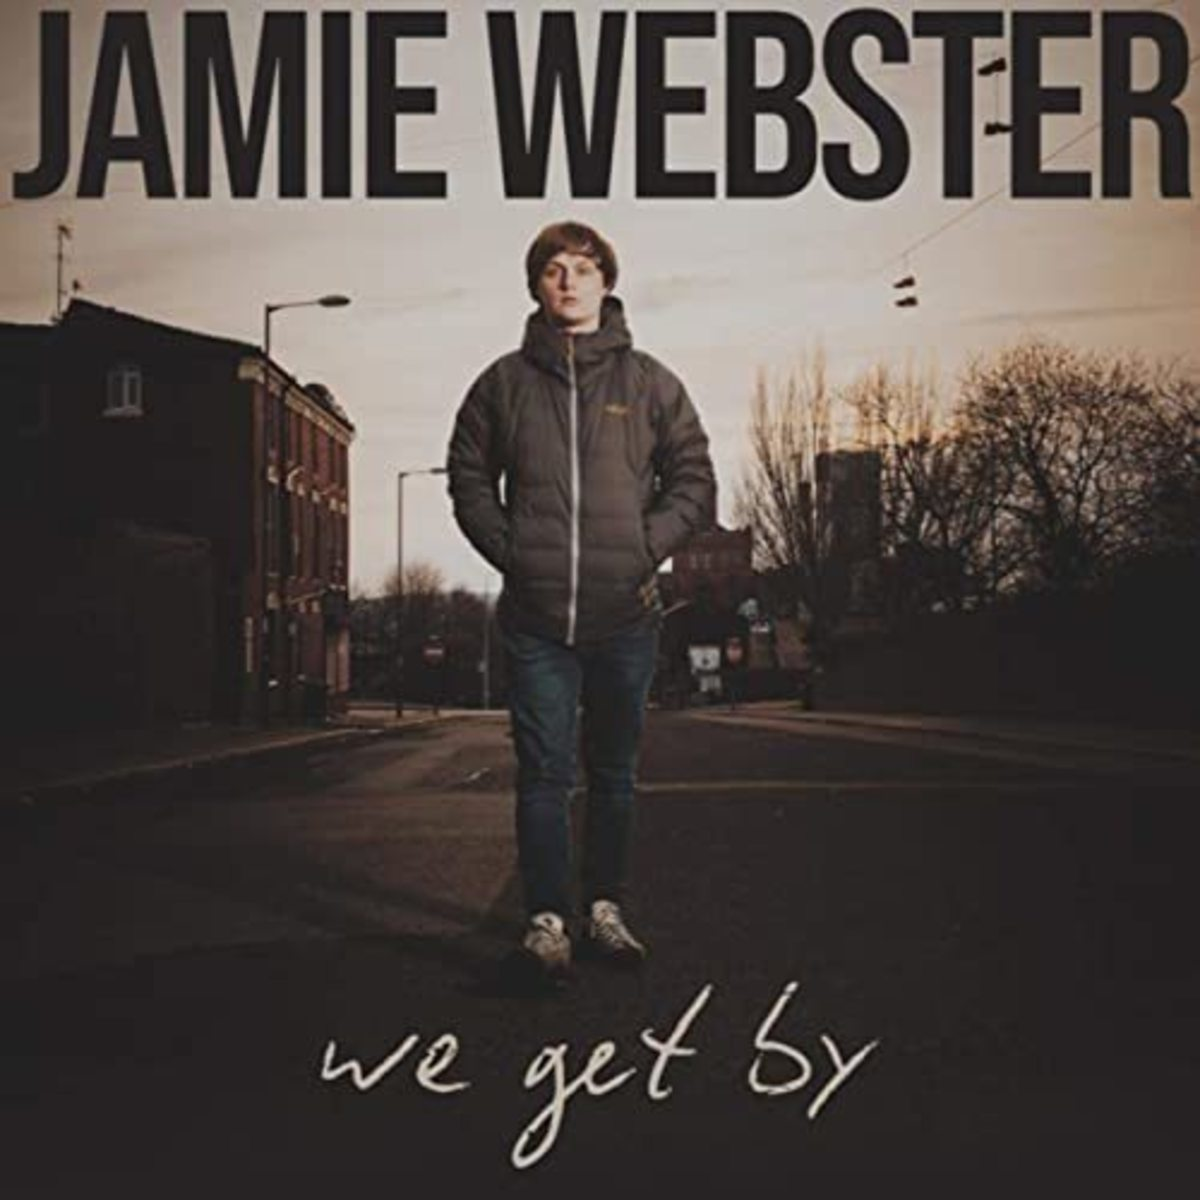 Jamie Webster's Album Cover